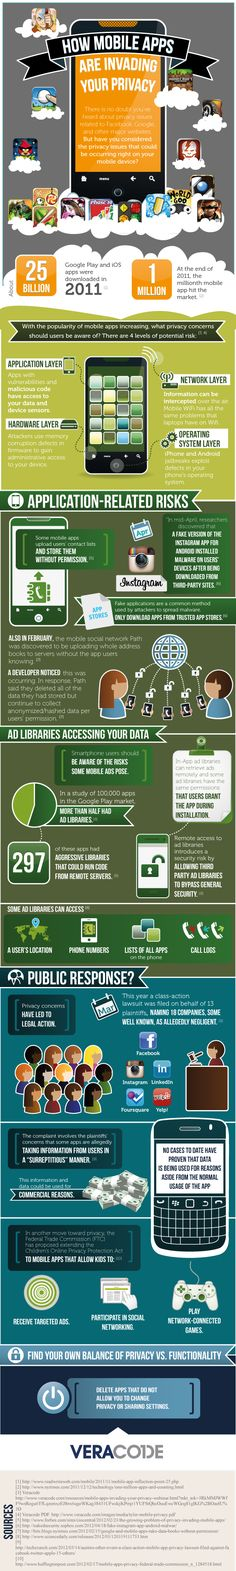 How-Mobile-Apps-Are-Invading-Your-Privacy-infographic  Find always more on http://infographicsmania.com